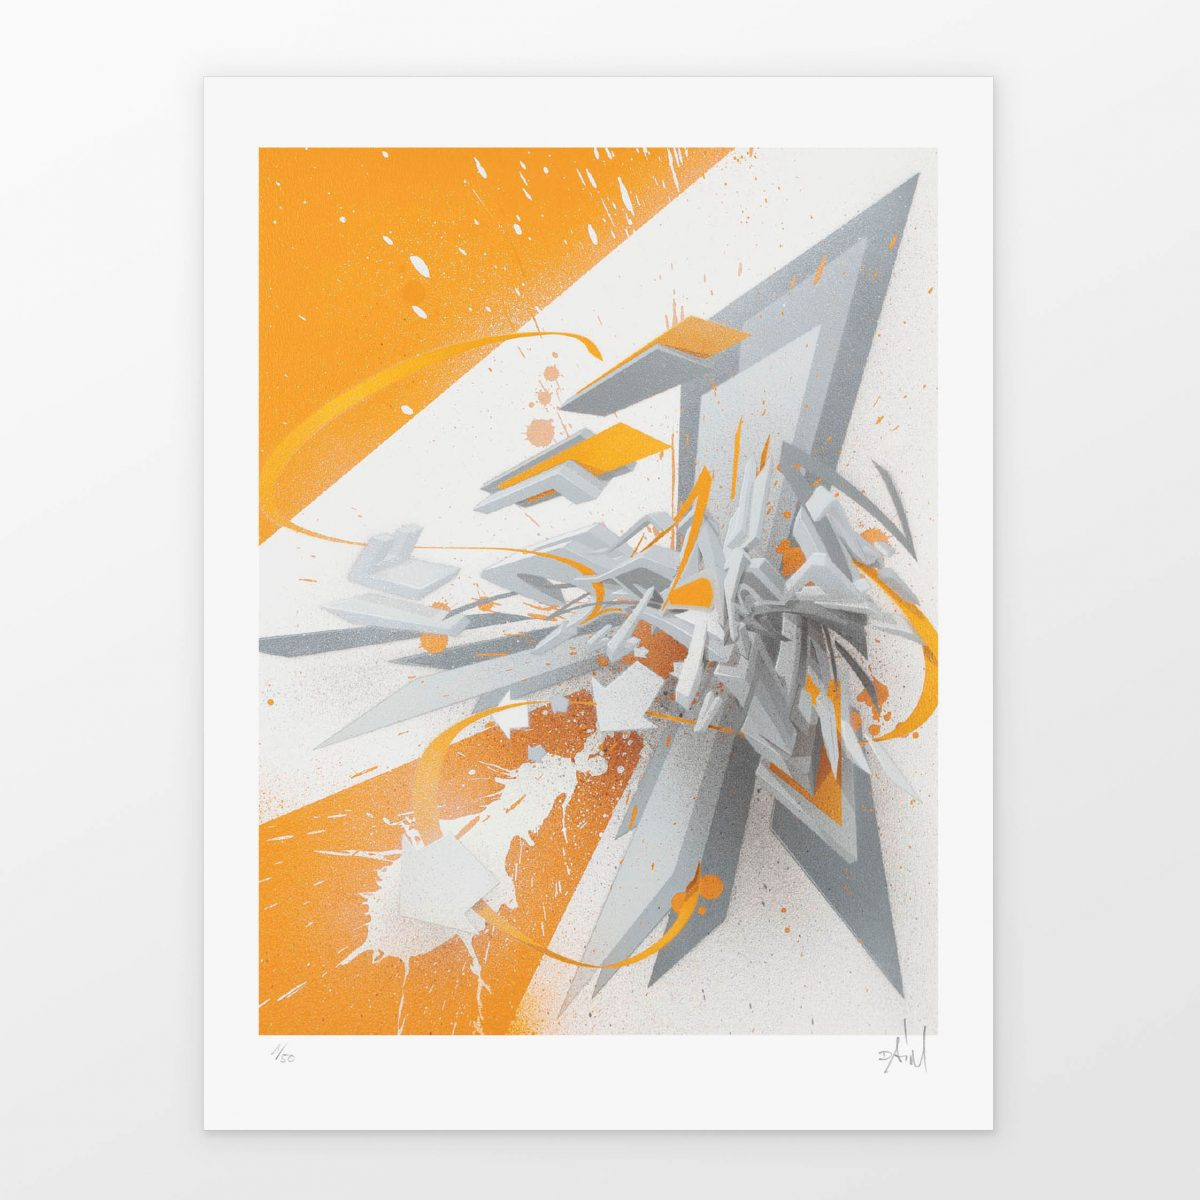 DAIM | ''DAIMaround -  Dynamic splash with orange'' | Giclée FineArt Print on 290 gsm Moab Rag Natural Paper | 40,64 x 30,48 cm / 16 x 12 inch | 2019 | Edition of 50 + 5 AP + 3 PP, handsigned, numbered and with Certificate of Authenticity of 1xRUN | © DAIM | Courtesy: 1xRUN